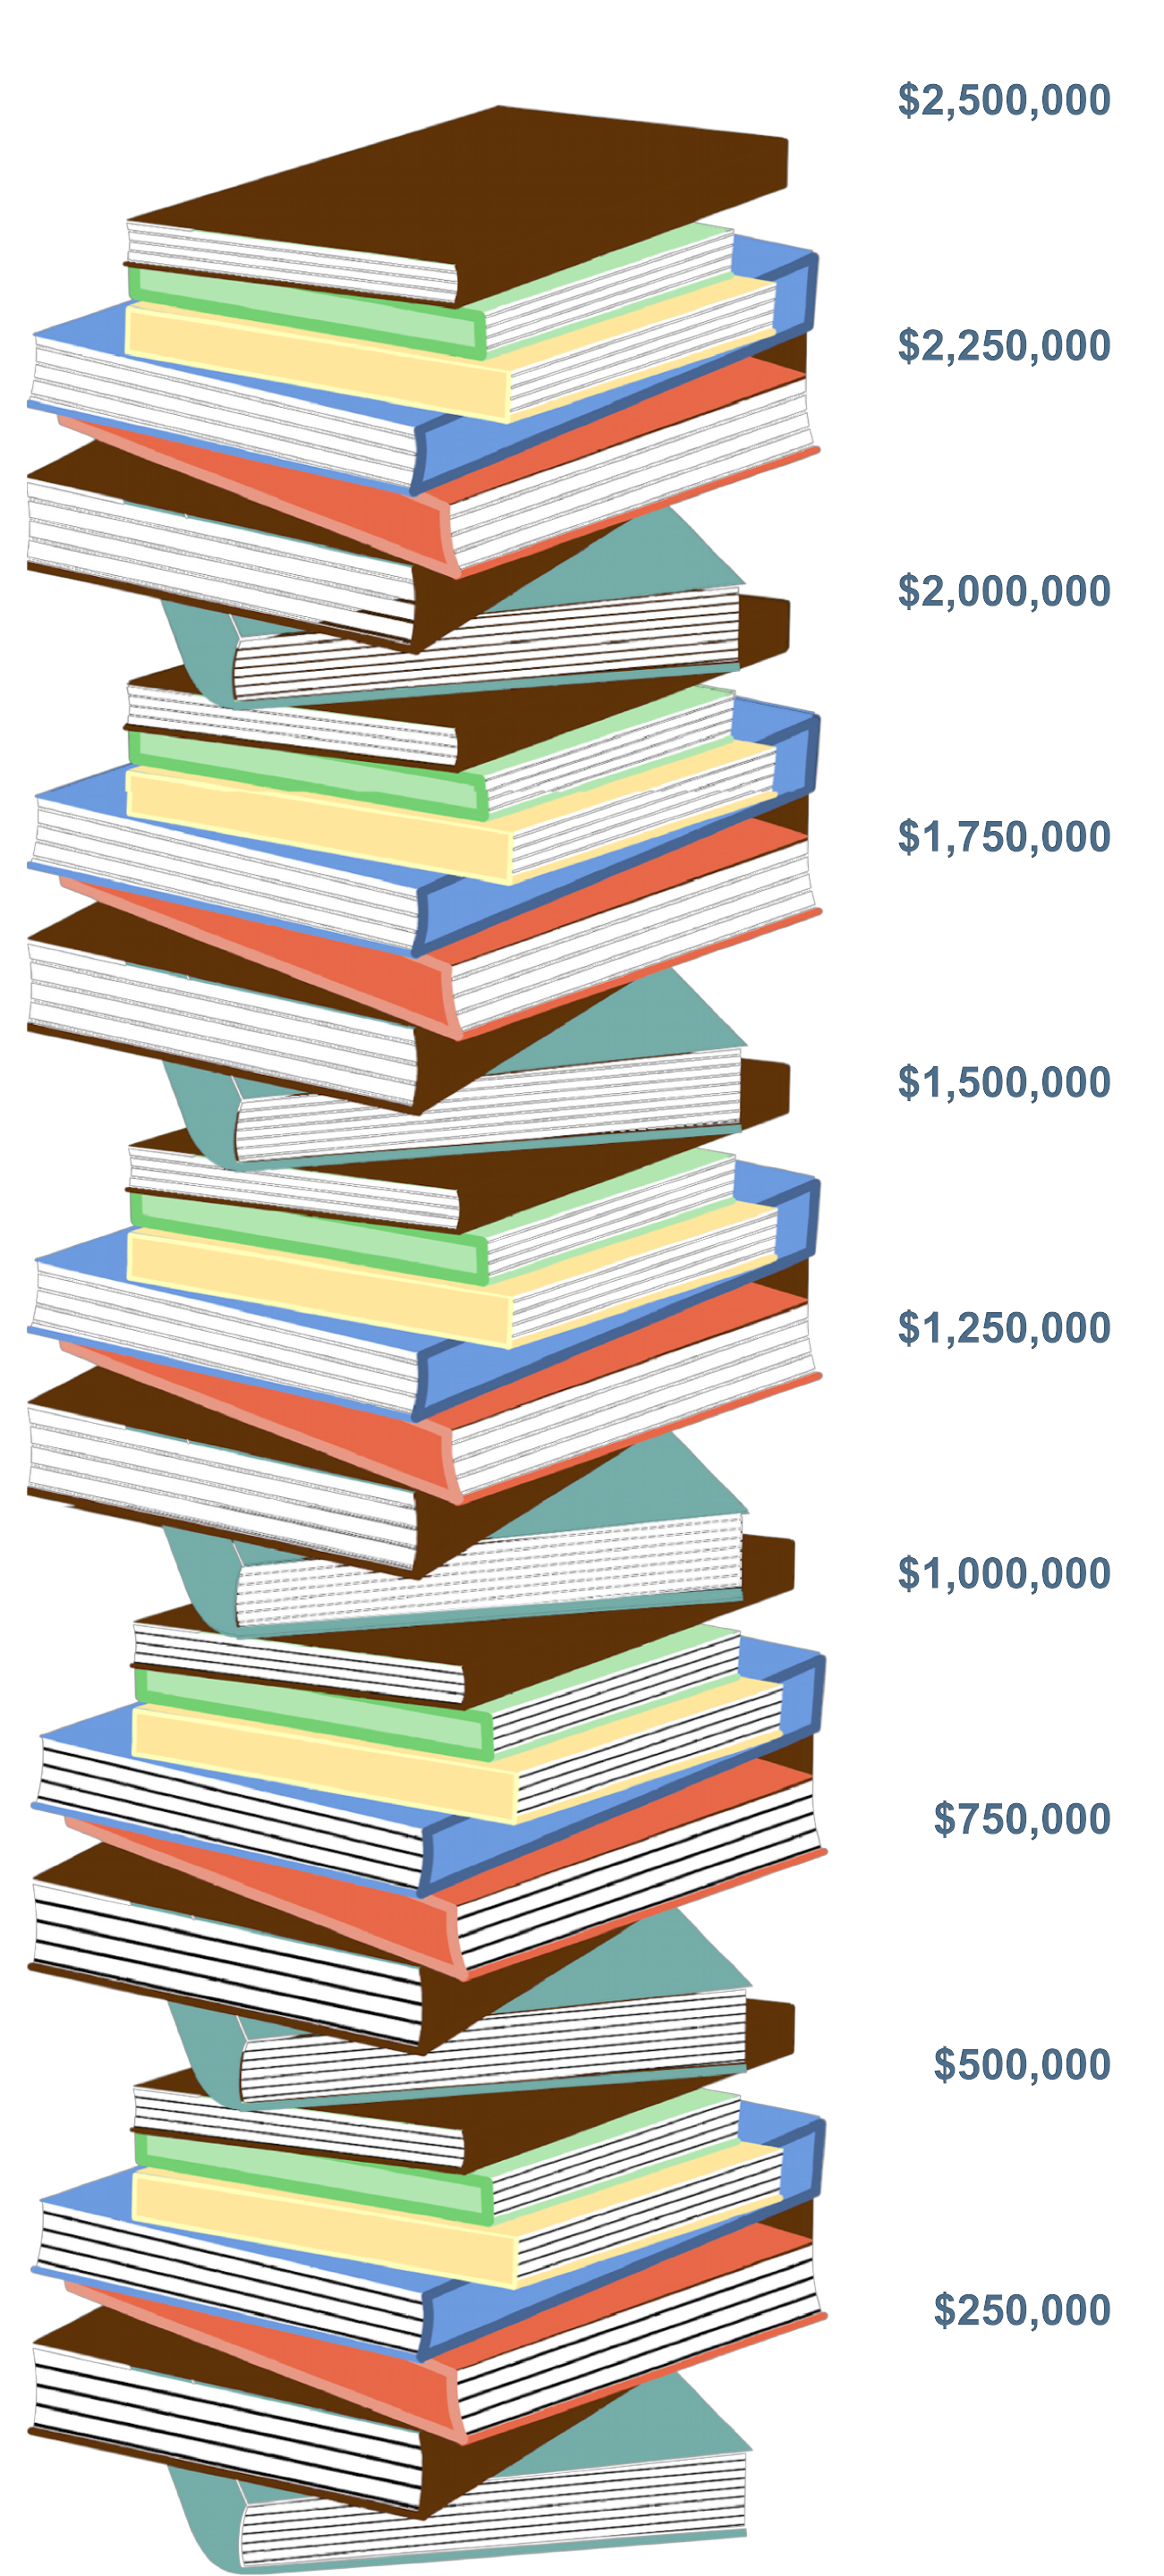 Book stack image showing 2,476,300 raised so far